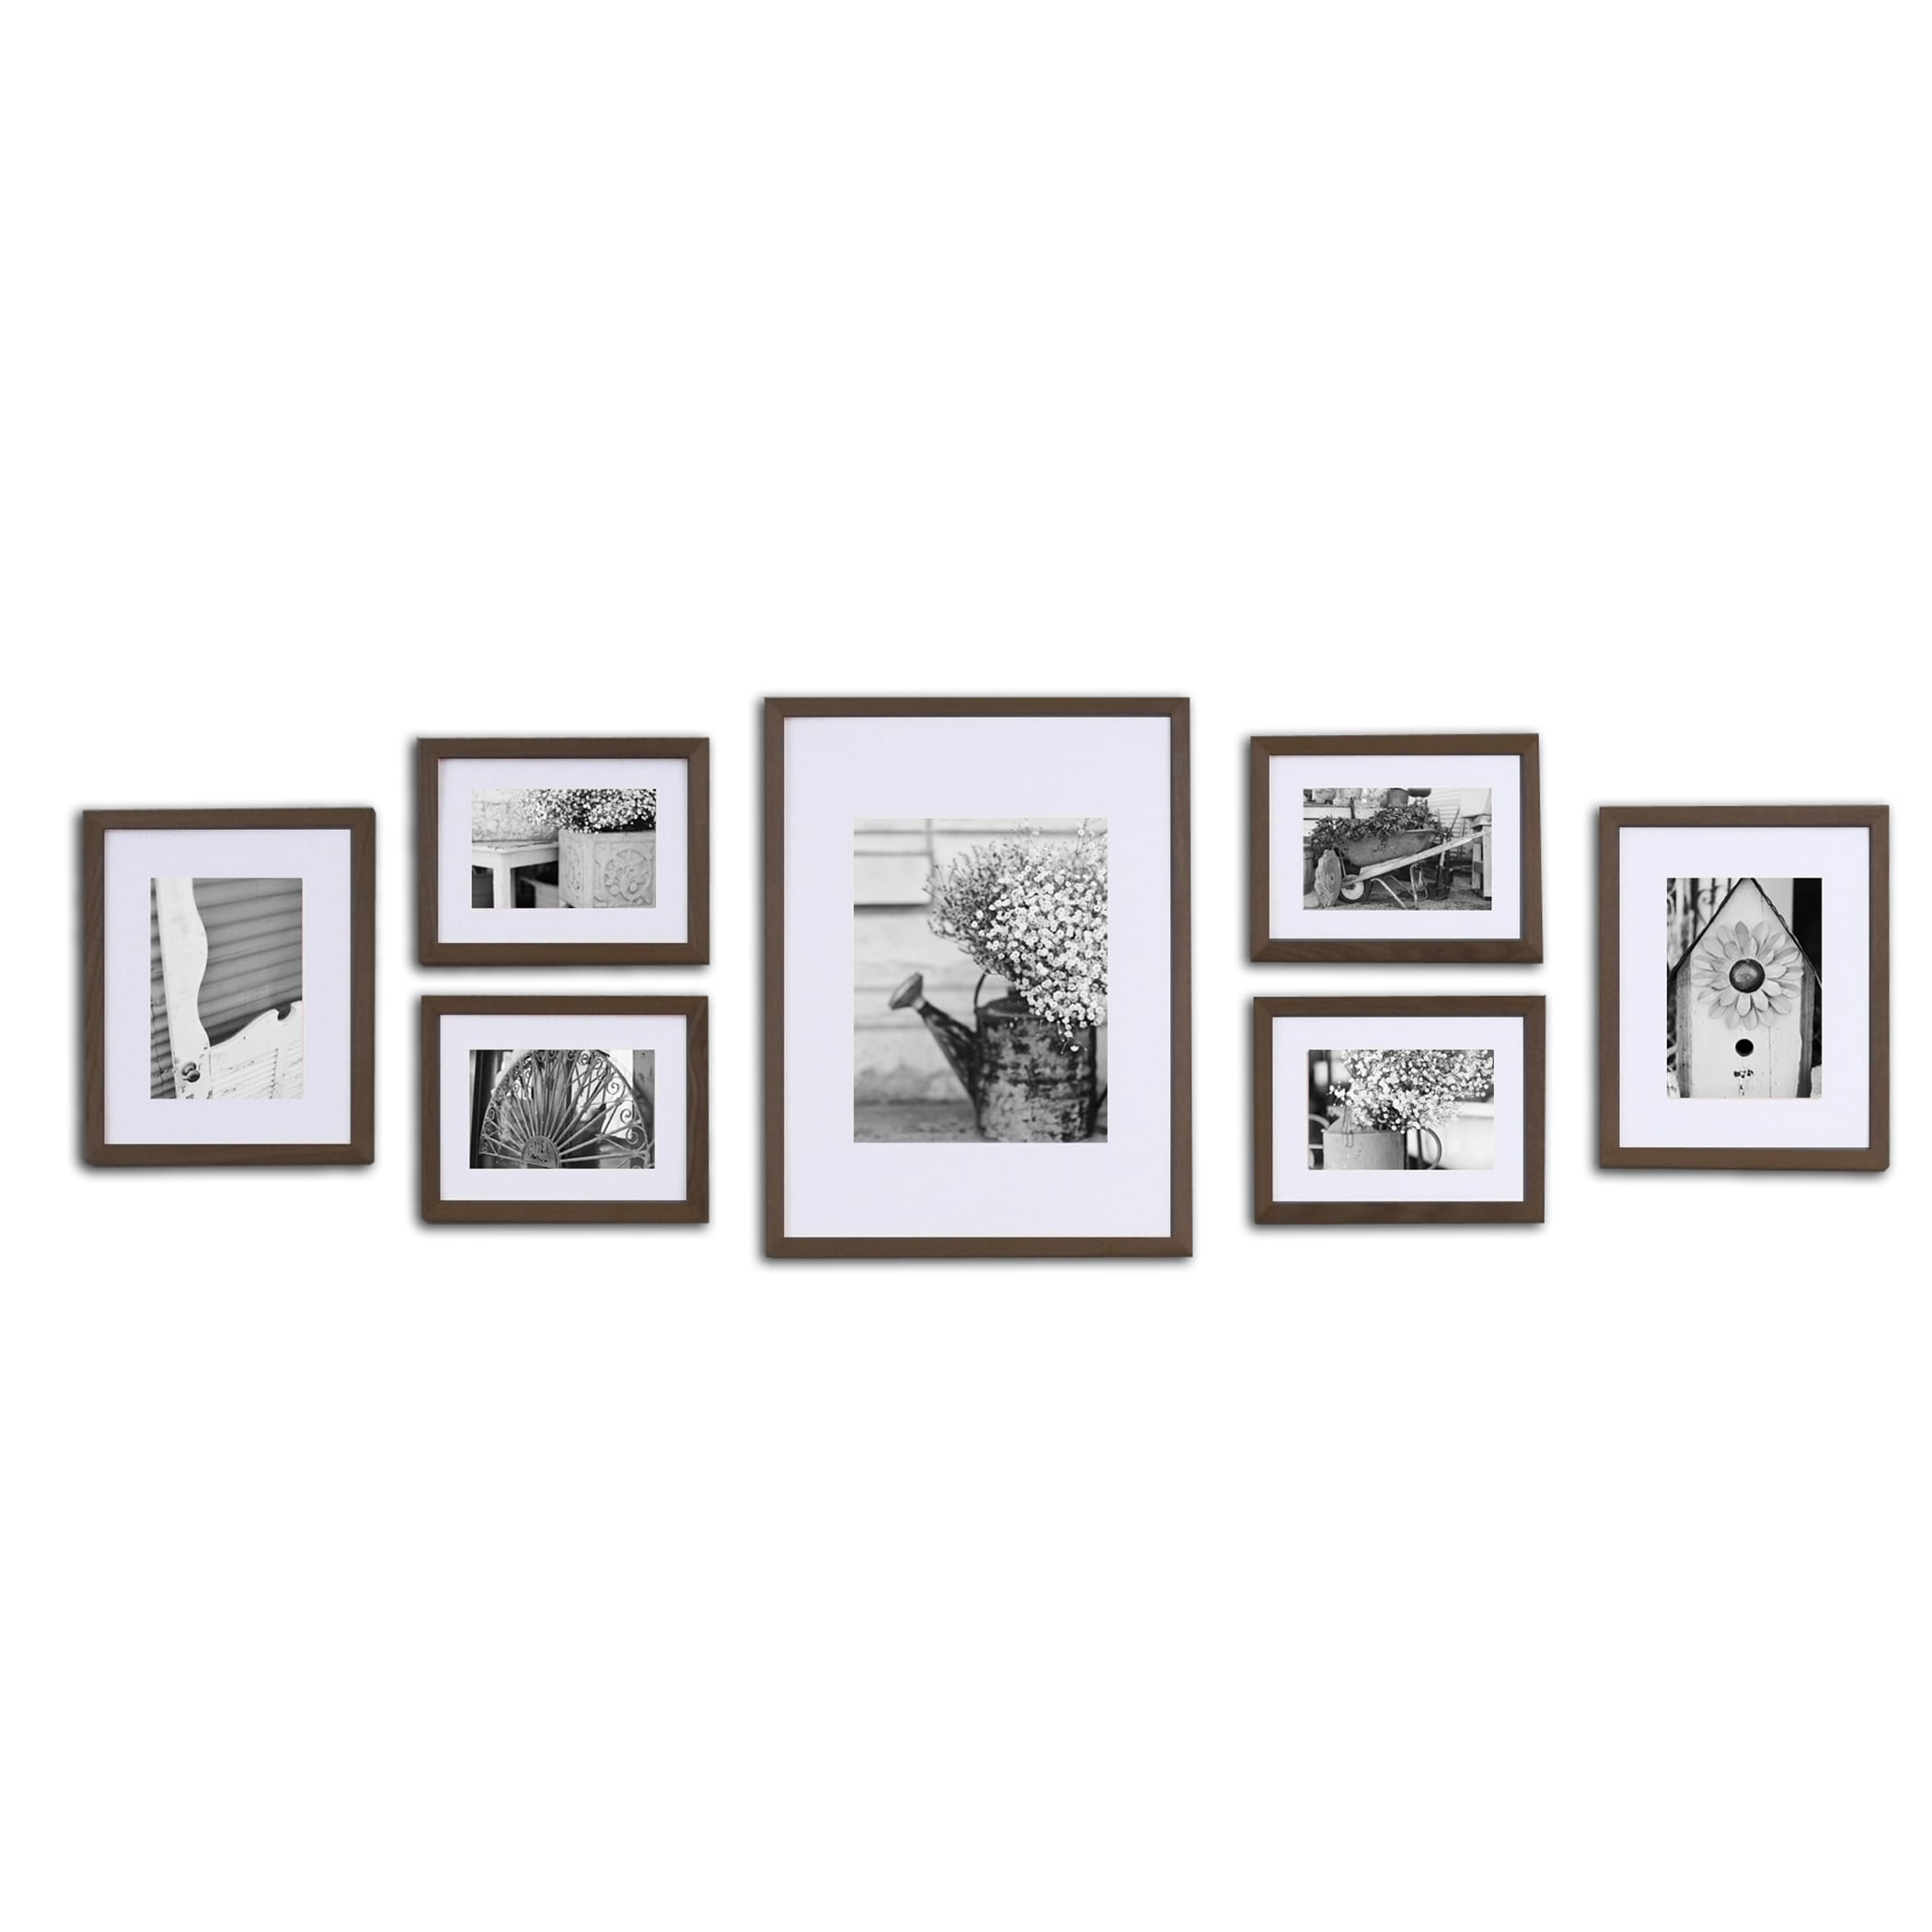 Pinnacle frames accents gallery perfect 7 piece wall kits free pinnacle frames accents gallery perfect 7 piece wall kits free shipping today overstock 16855265 jeuxipadfo Images